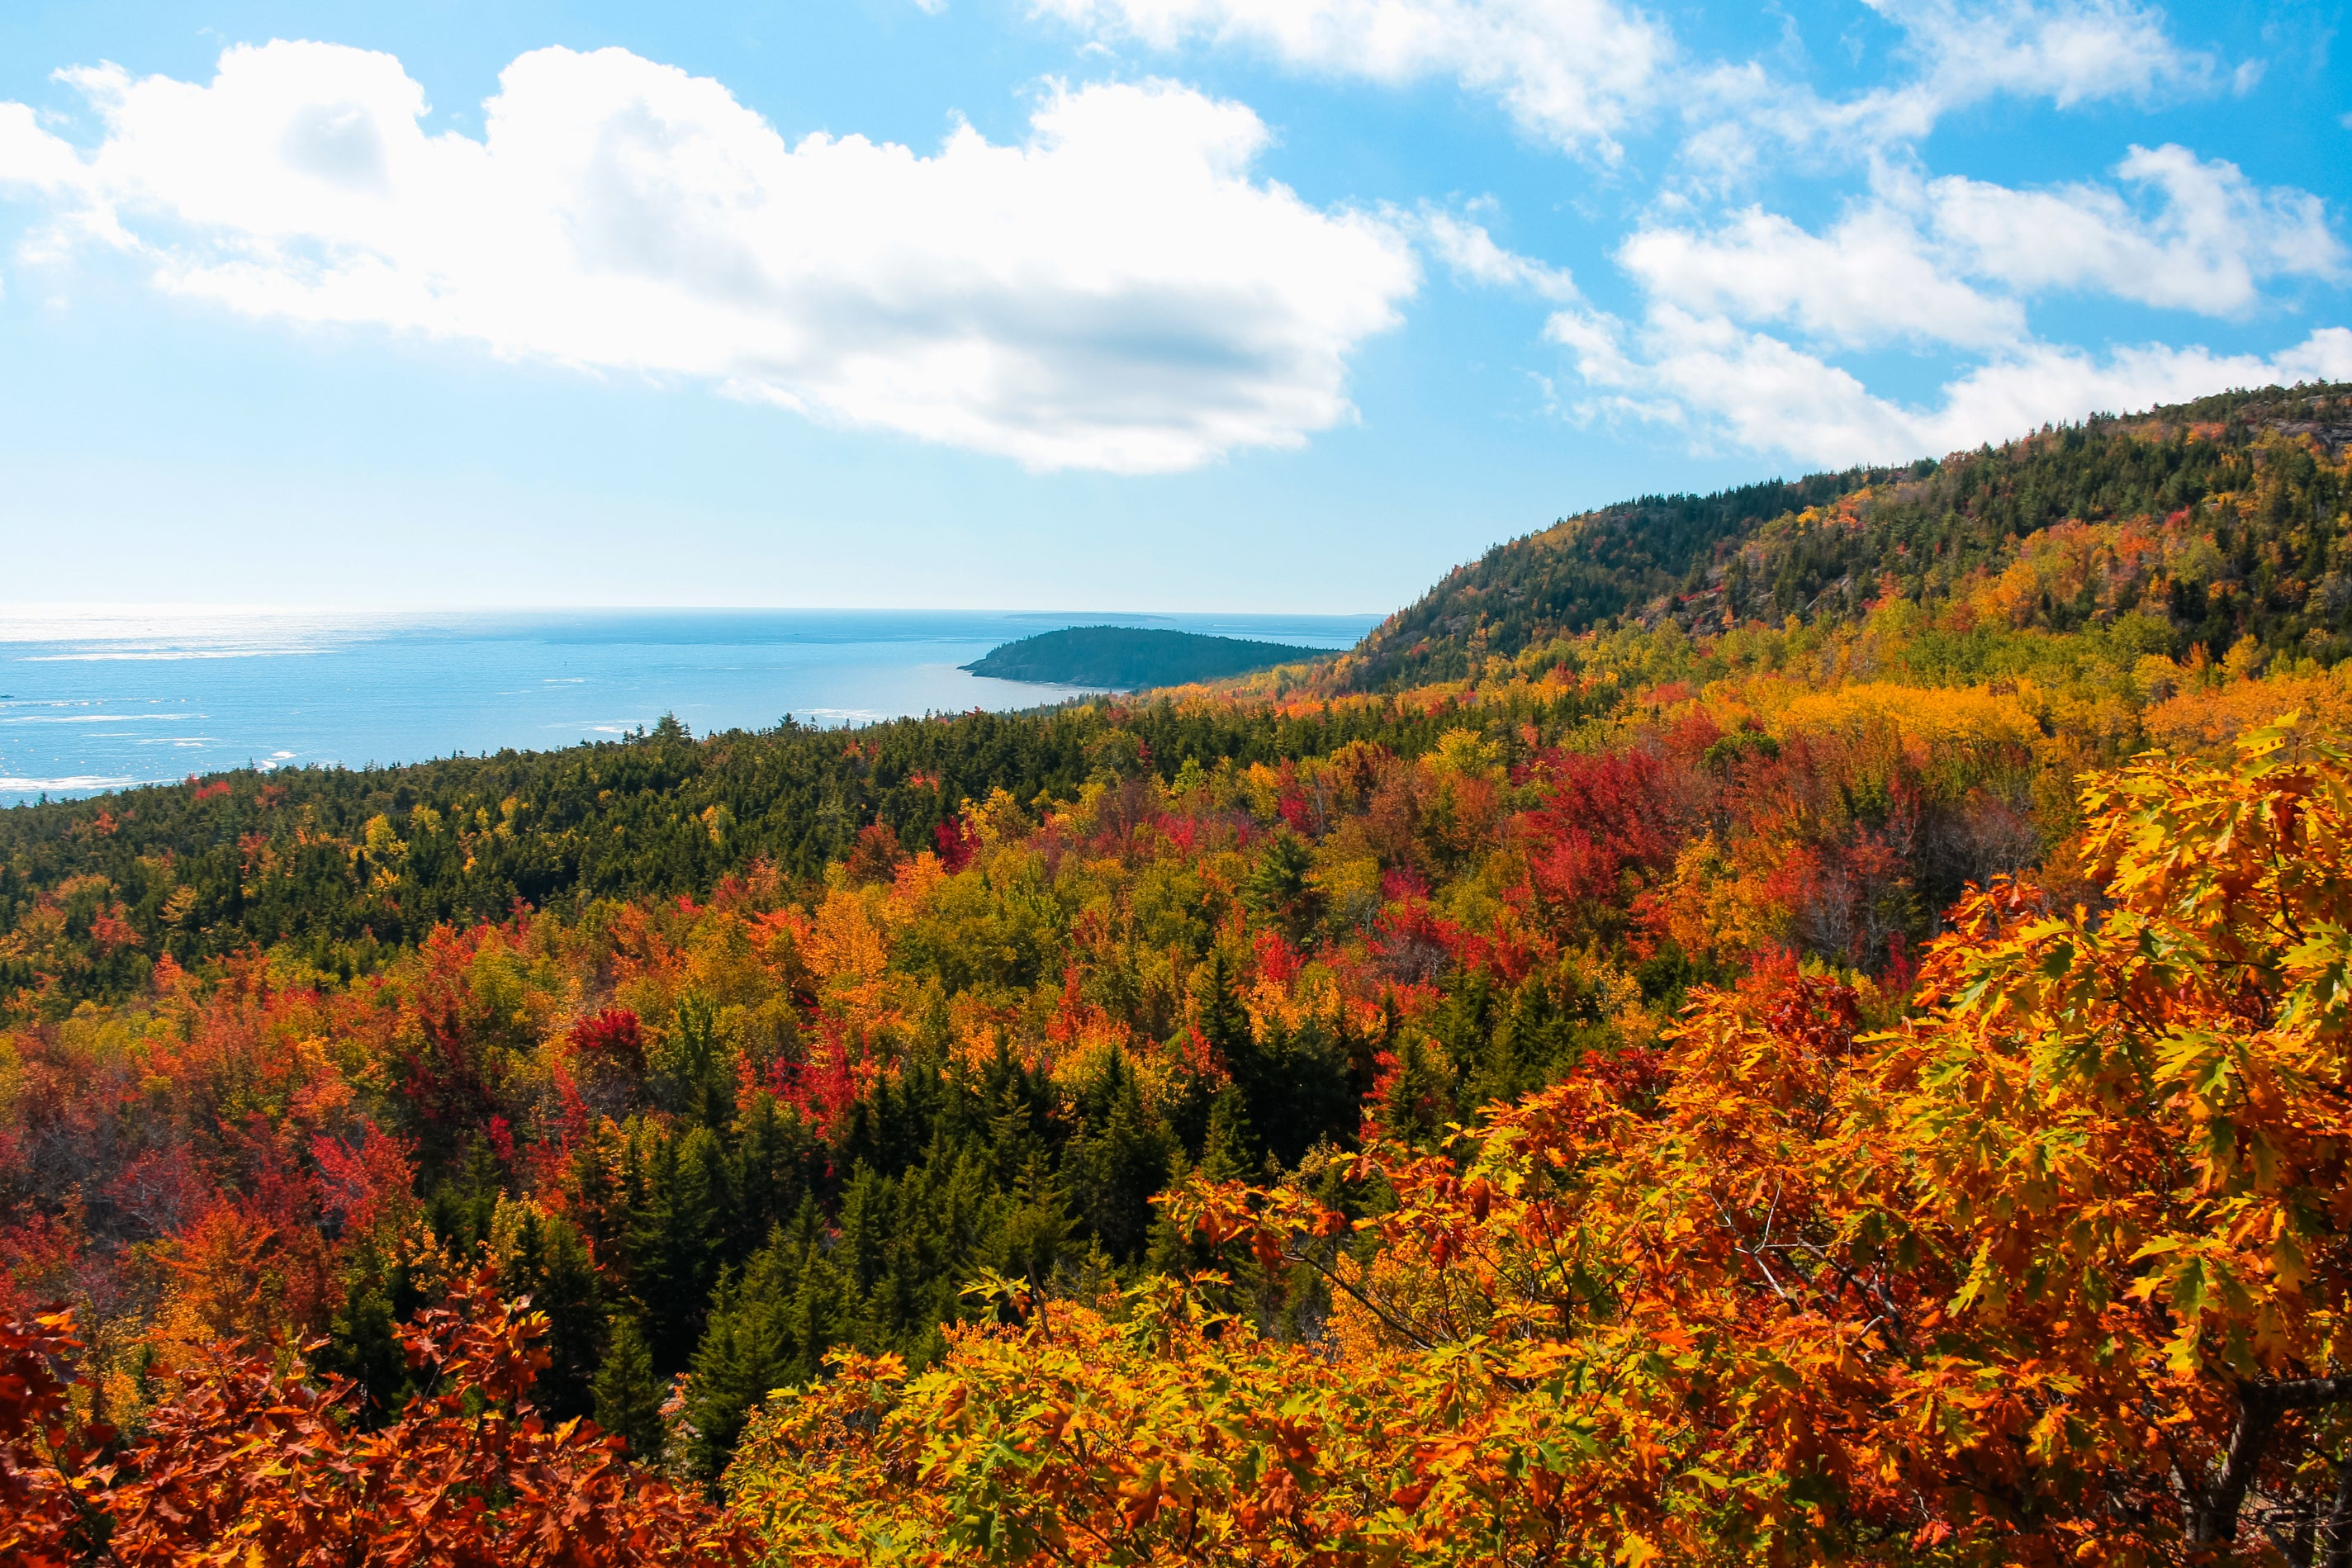 Acadia National Park has some of the best fall foliage viewing in New England. Located right near Bar Harbor, Acadia is one of the most popular national parks in the country, attracting visitors year round.